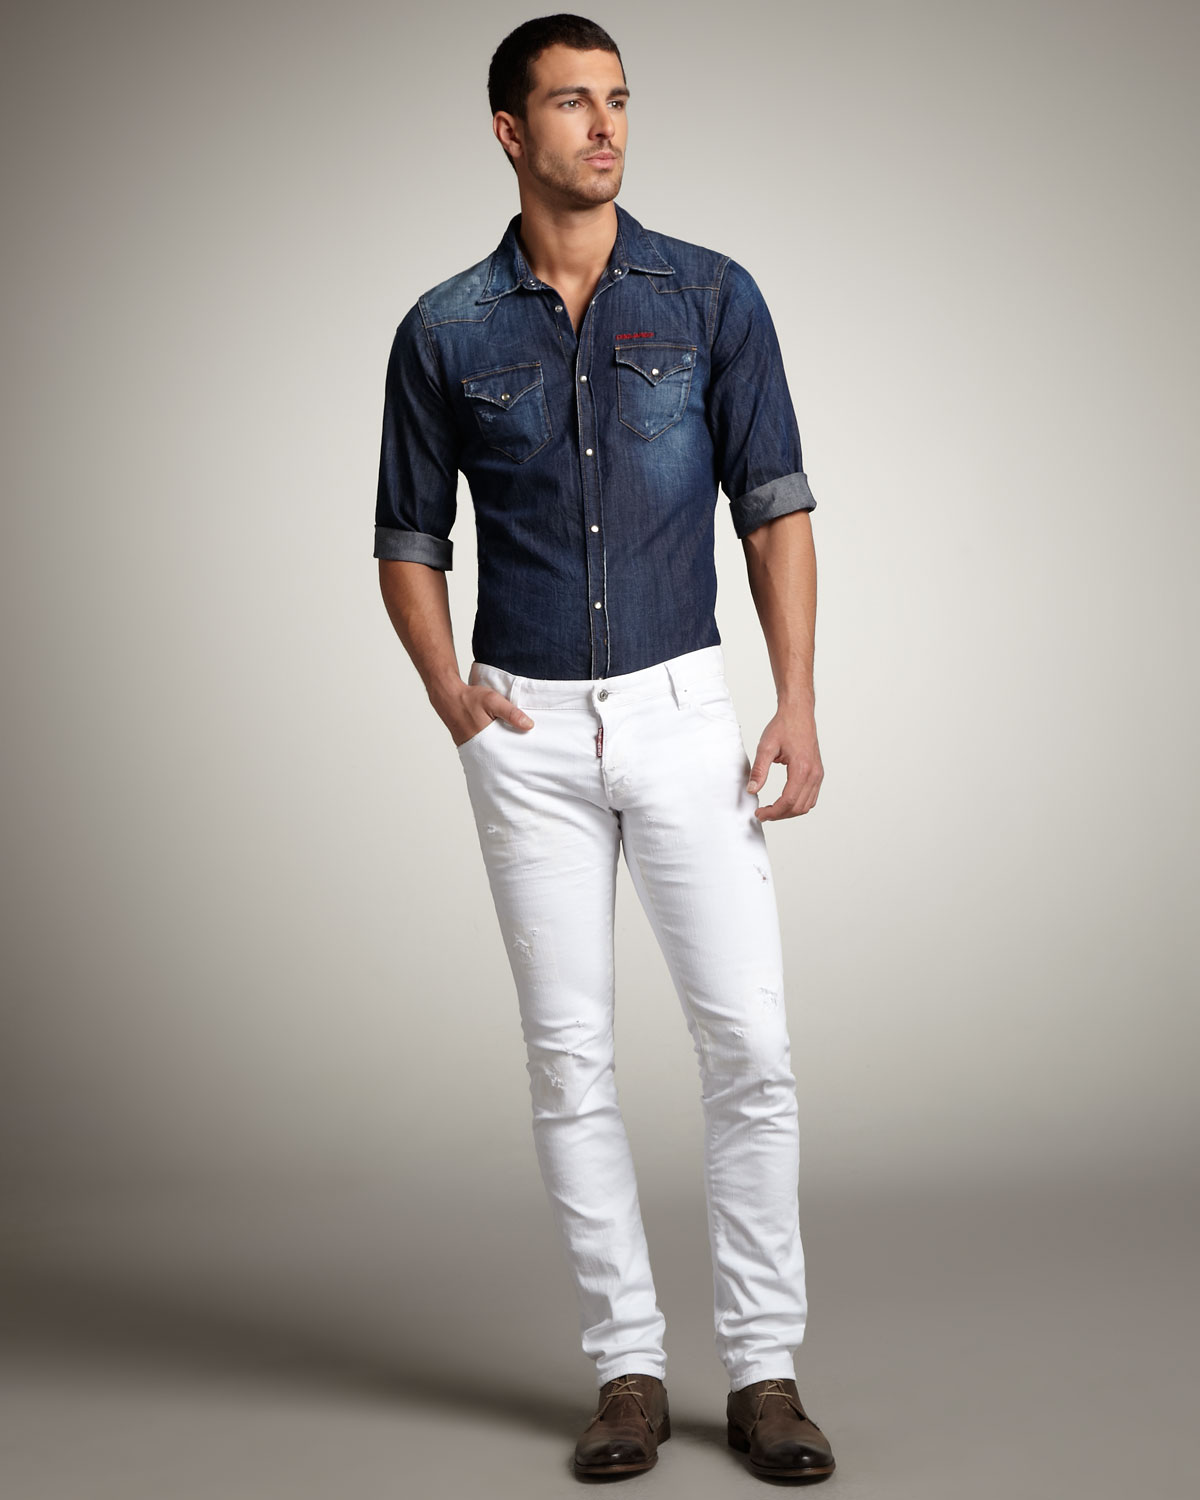 male white jeans - Jean Yu Beauty